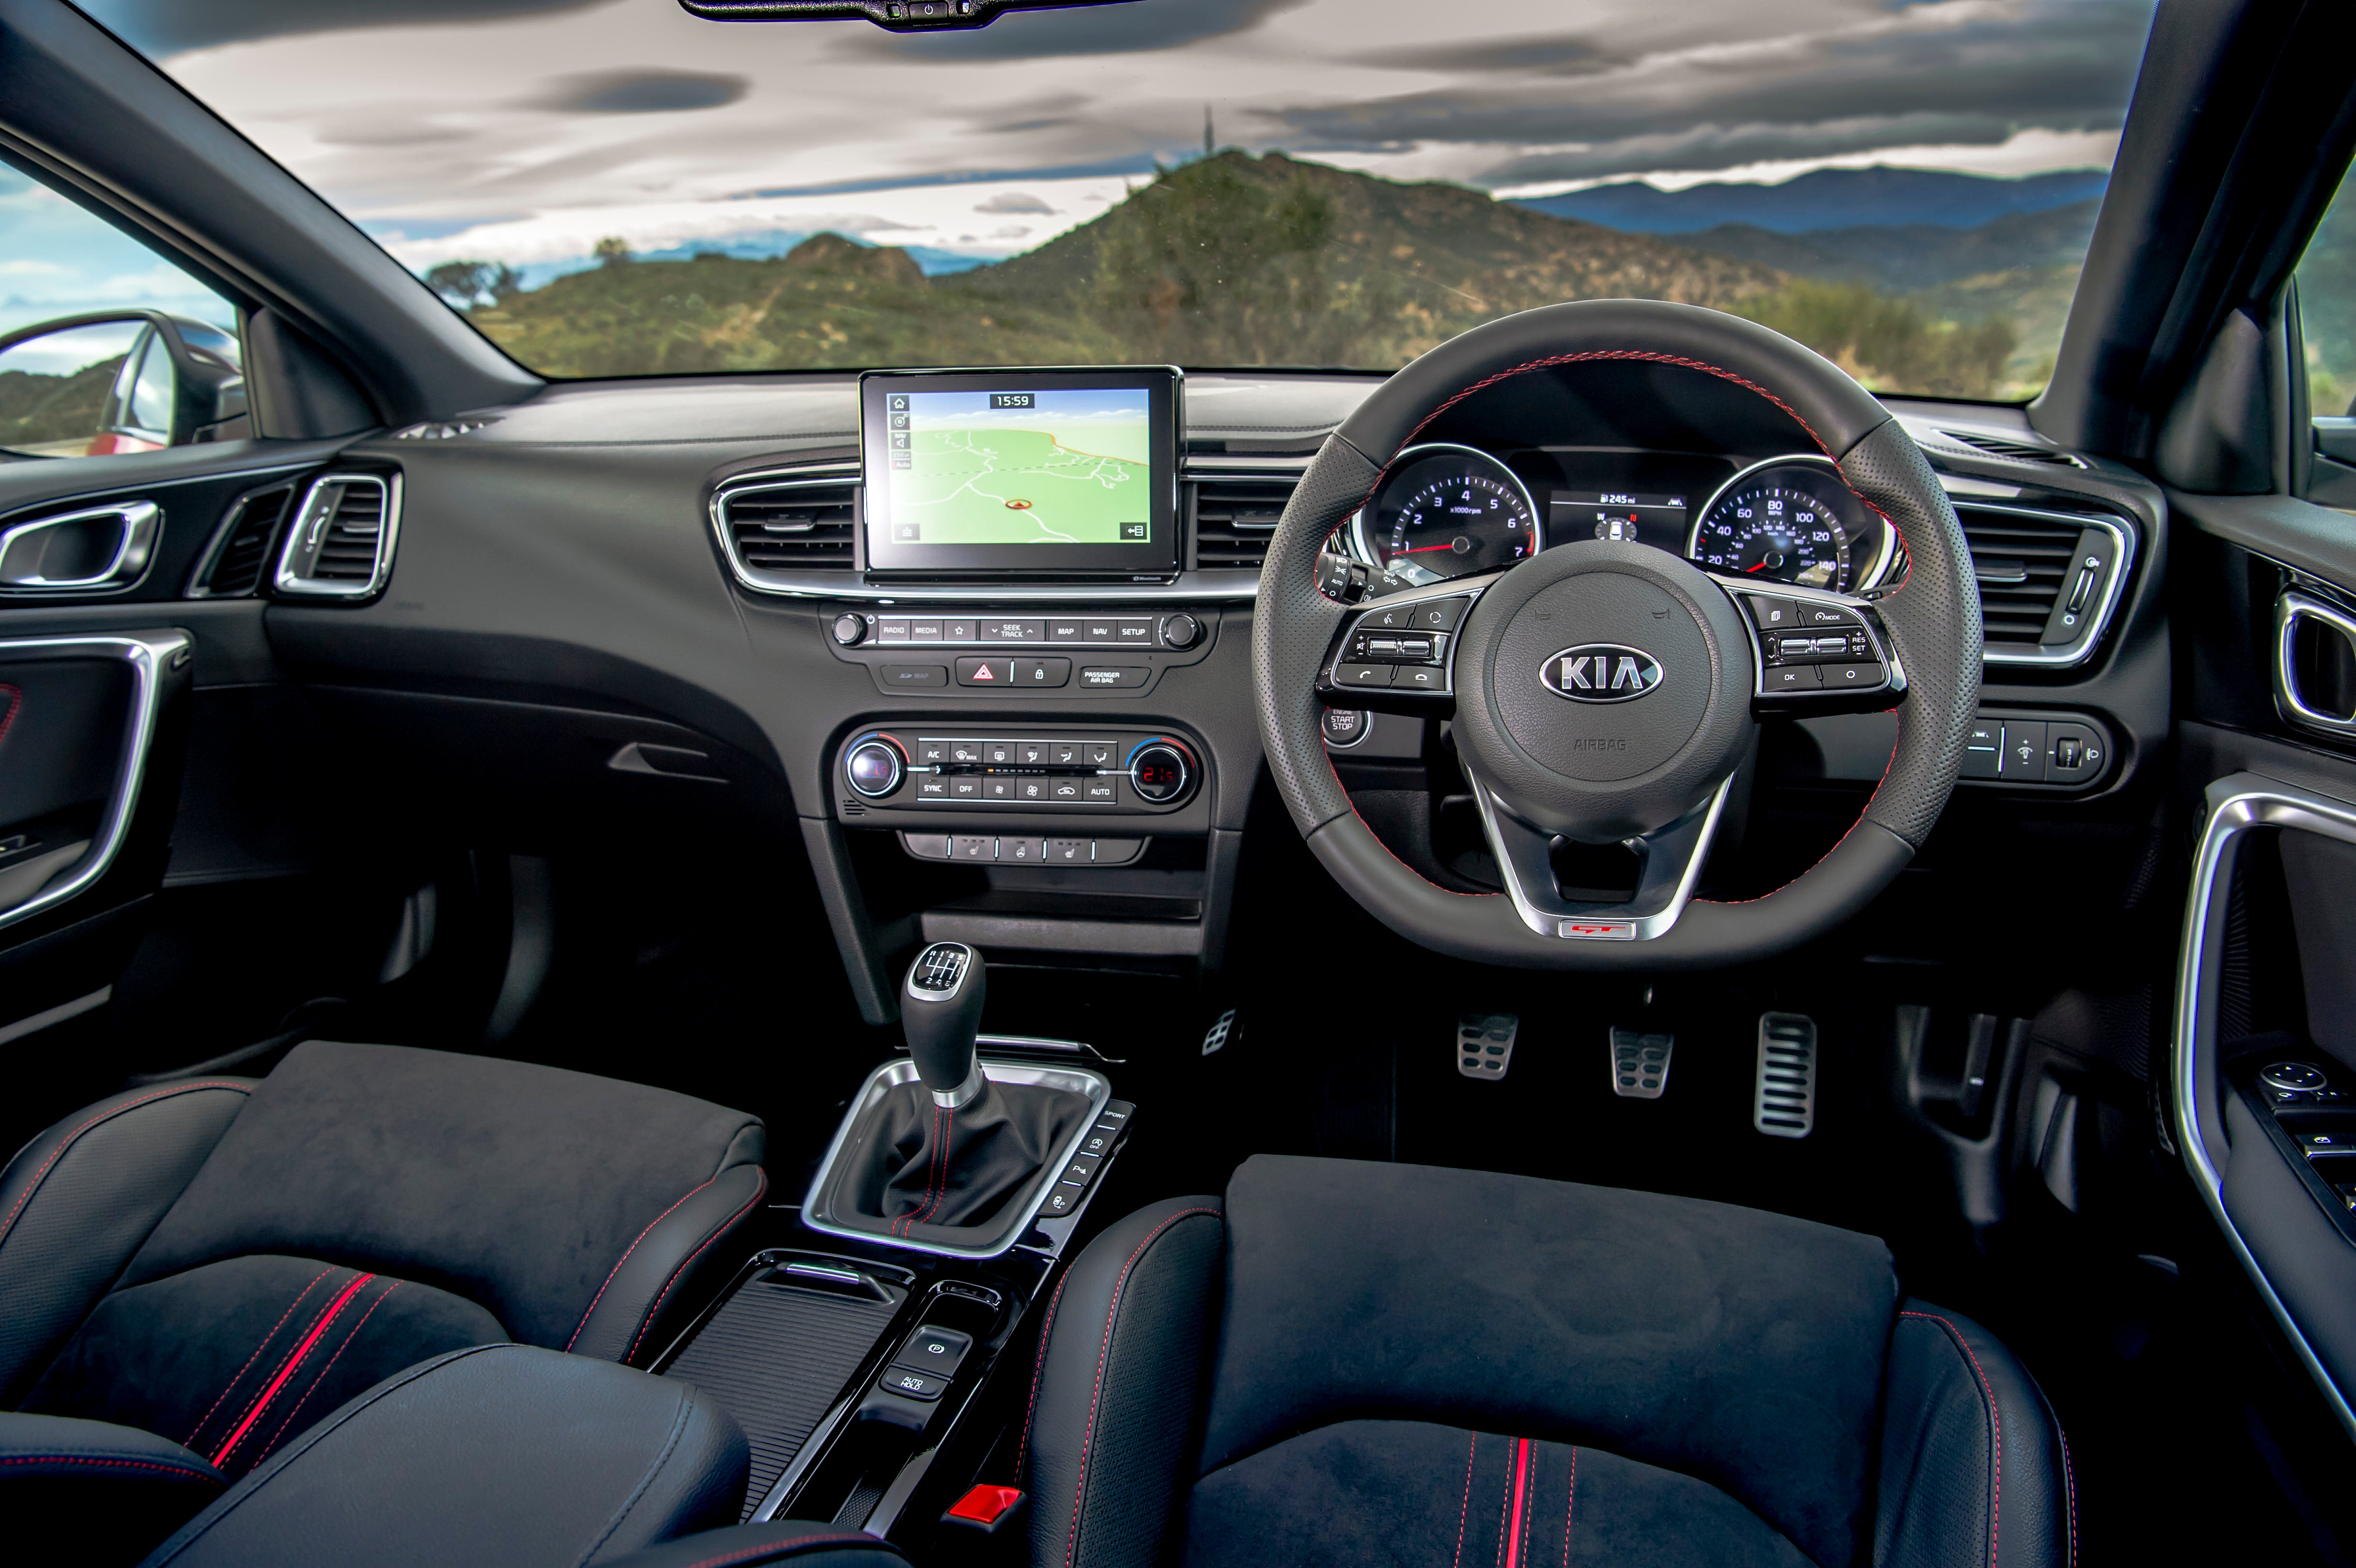 Kia Ceed interior dash